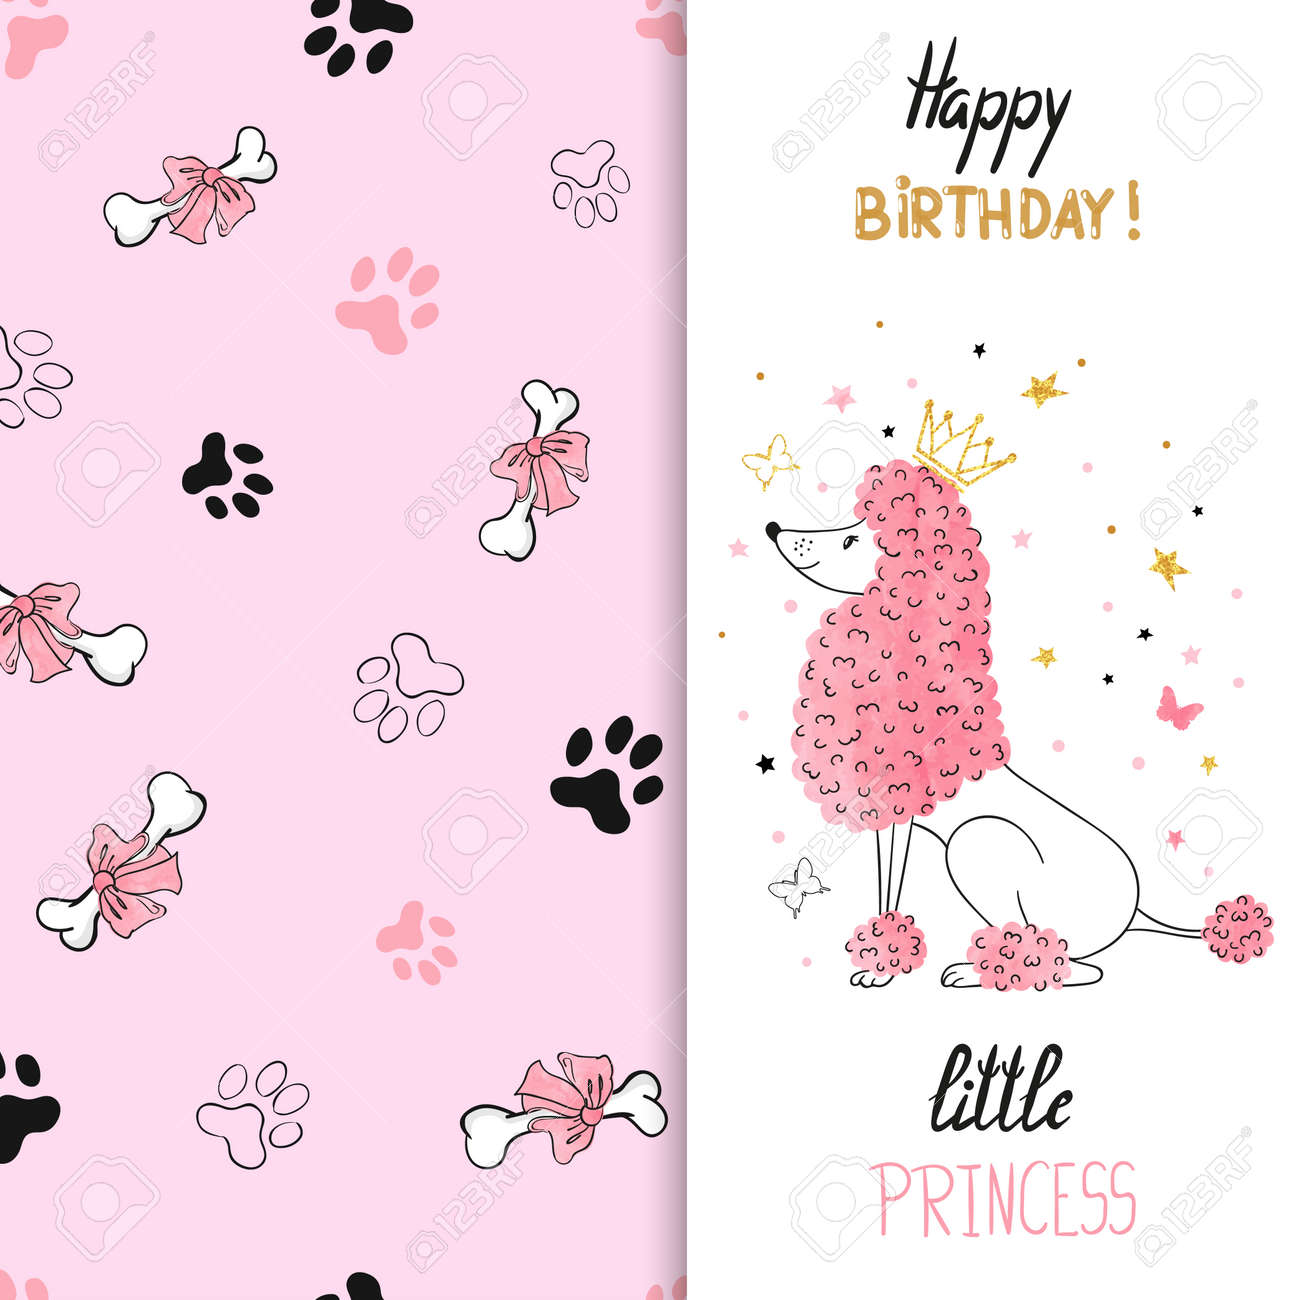 Watercolor birthday greeting card design with princess poodle watercolor birthday greeting card design with princess poodle dog vector illustration for kids stock kristyandbryce Images